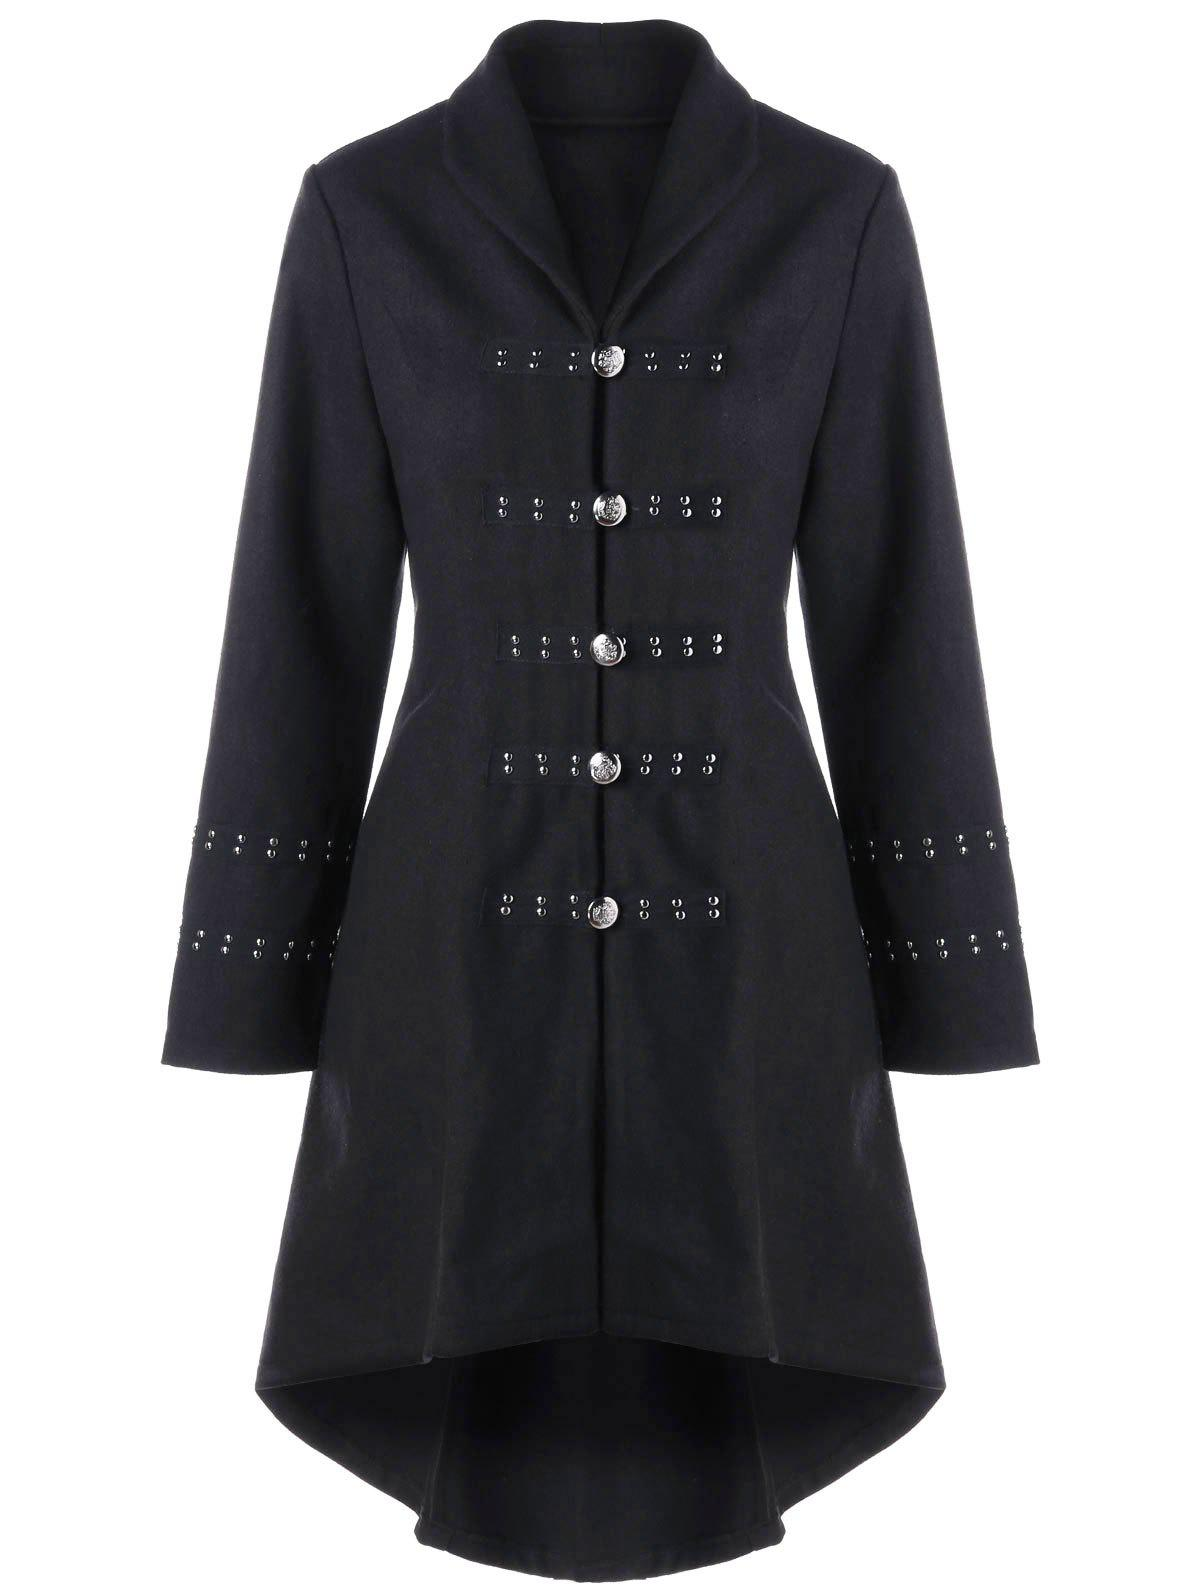 Hot Metal Embellished Lace Up High Low Coat